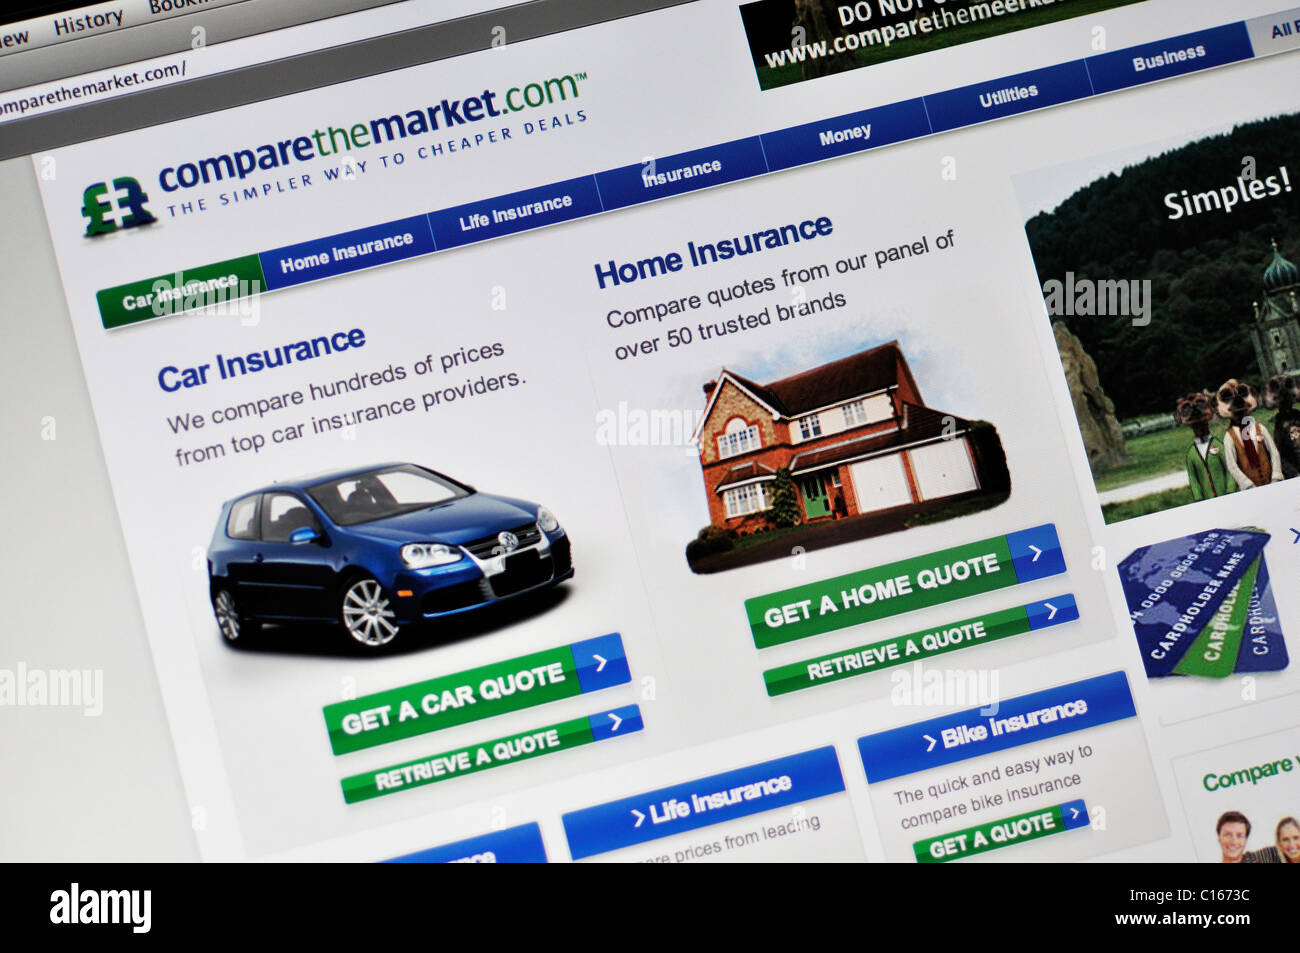 Comparethemarket website - online products and services comparison - Stock Image